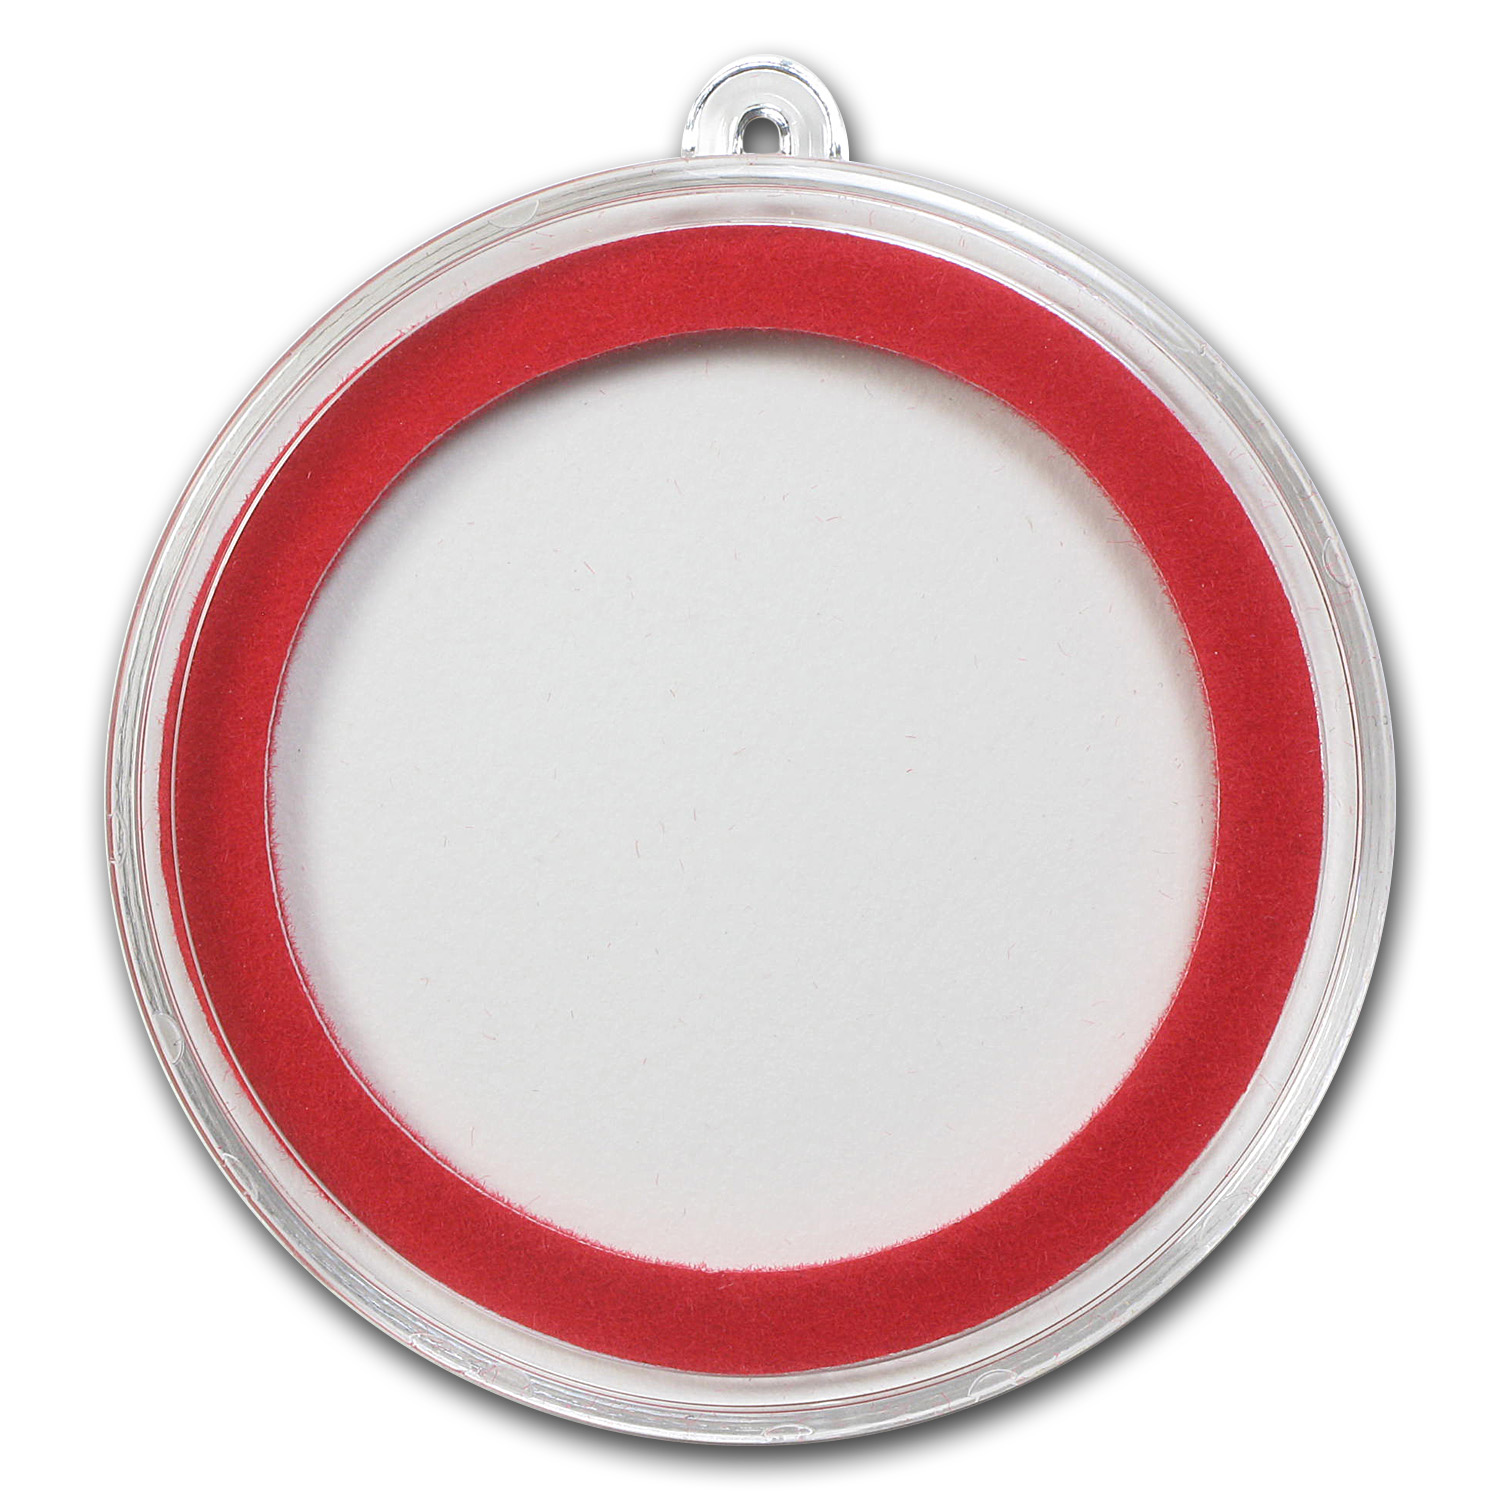 Ornament Capsule for Silver Rounds (38mm) - Red Ring